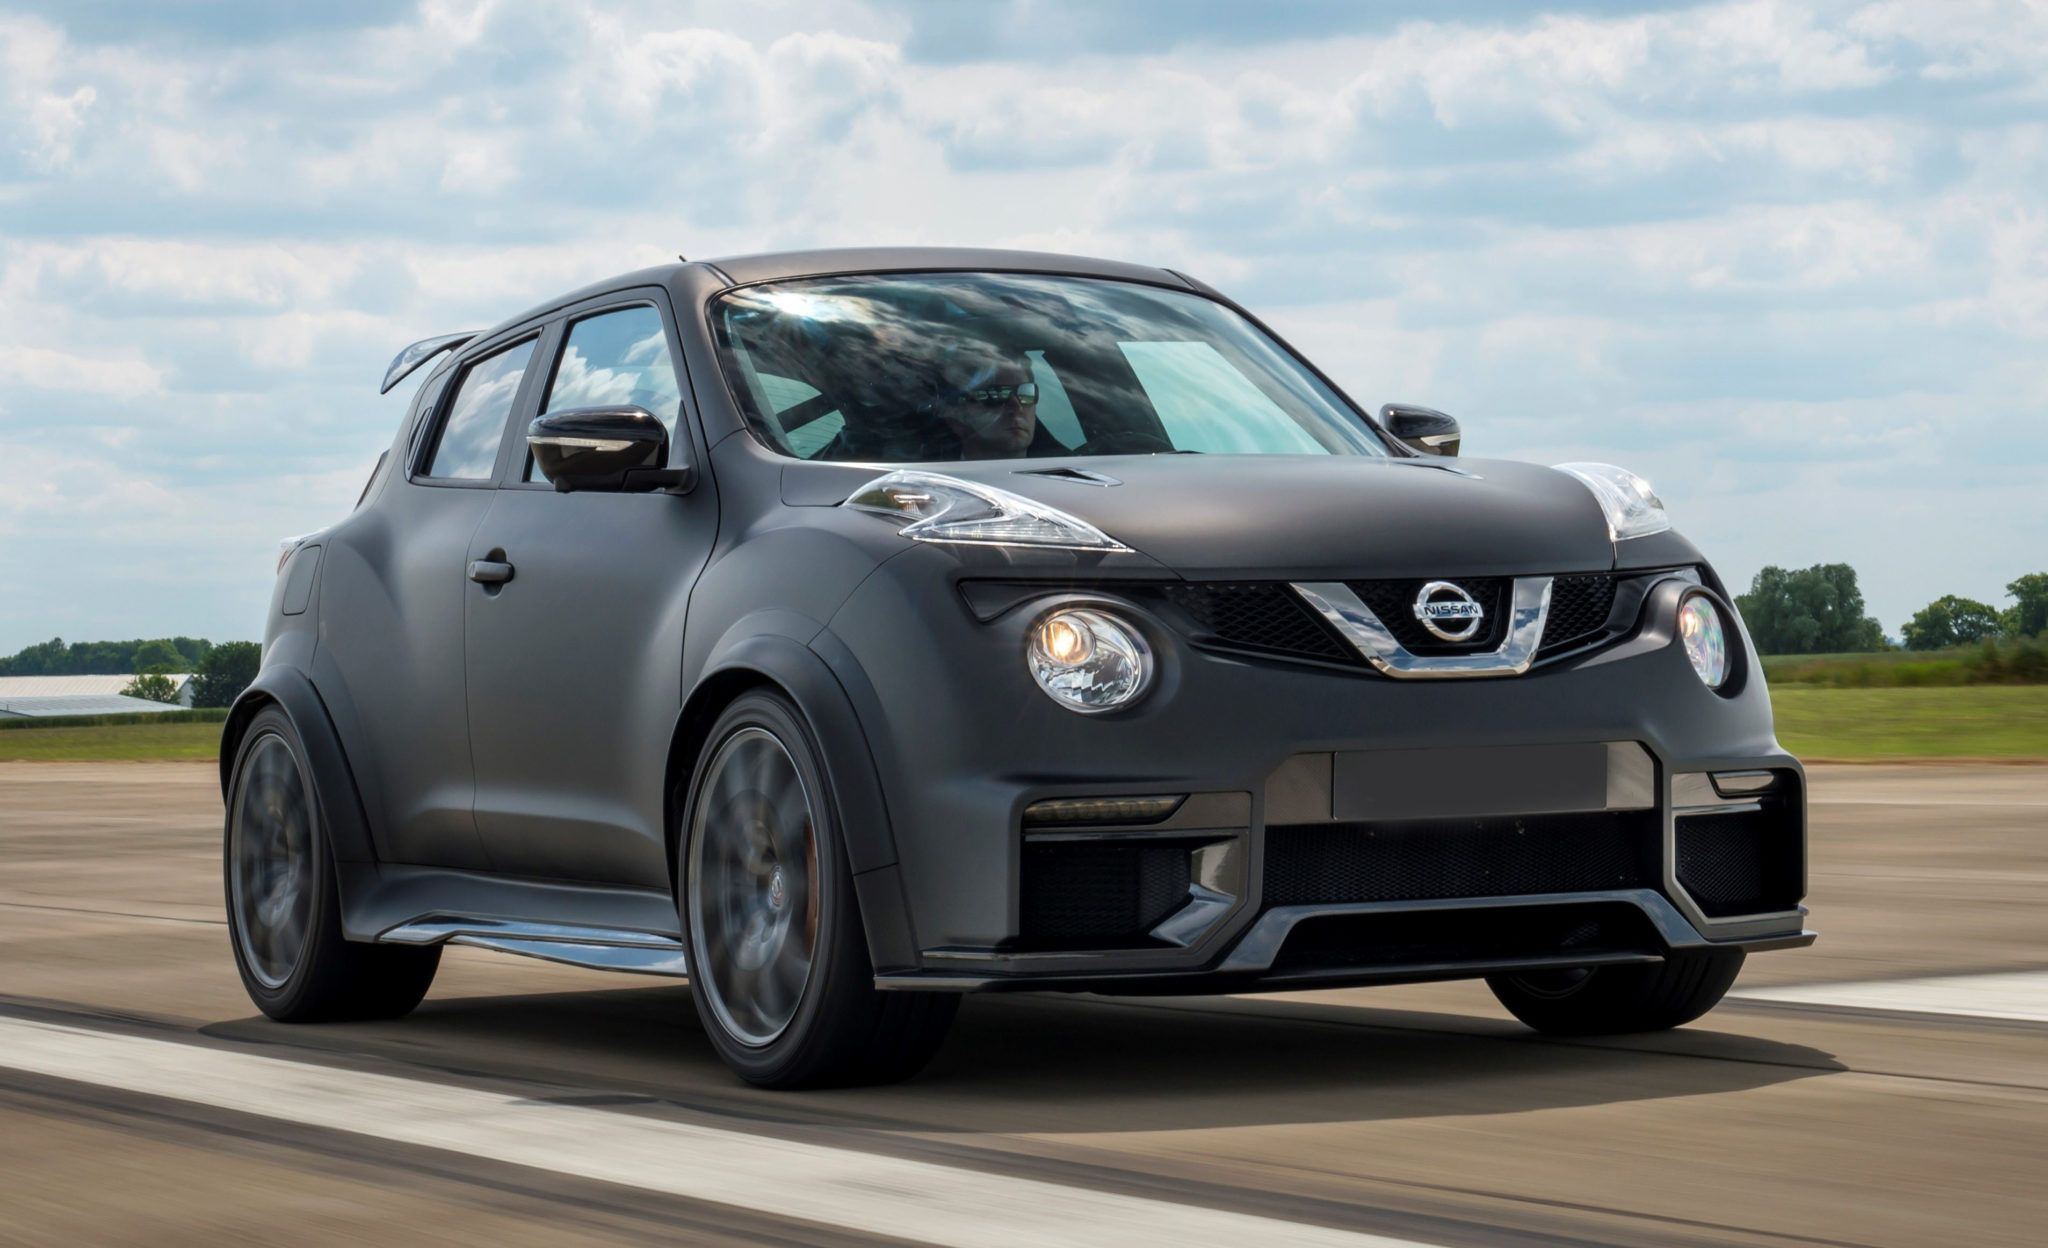 Nissan Juke Nismo Rs Specs With Images Nissan Juke Nissan